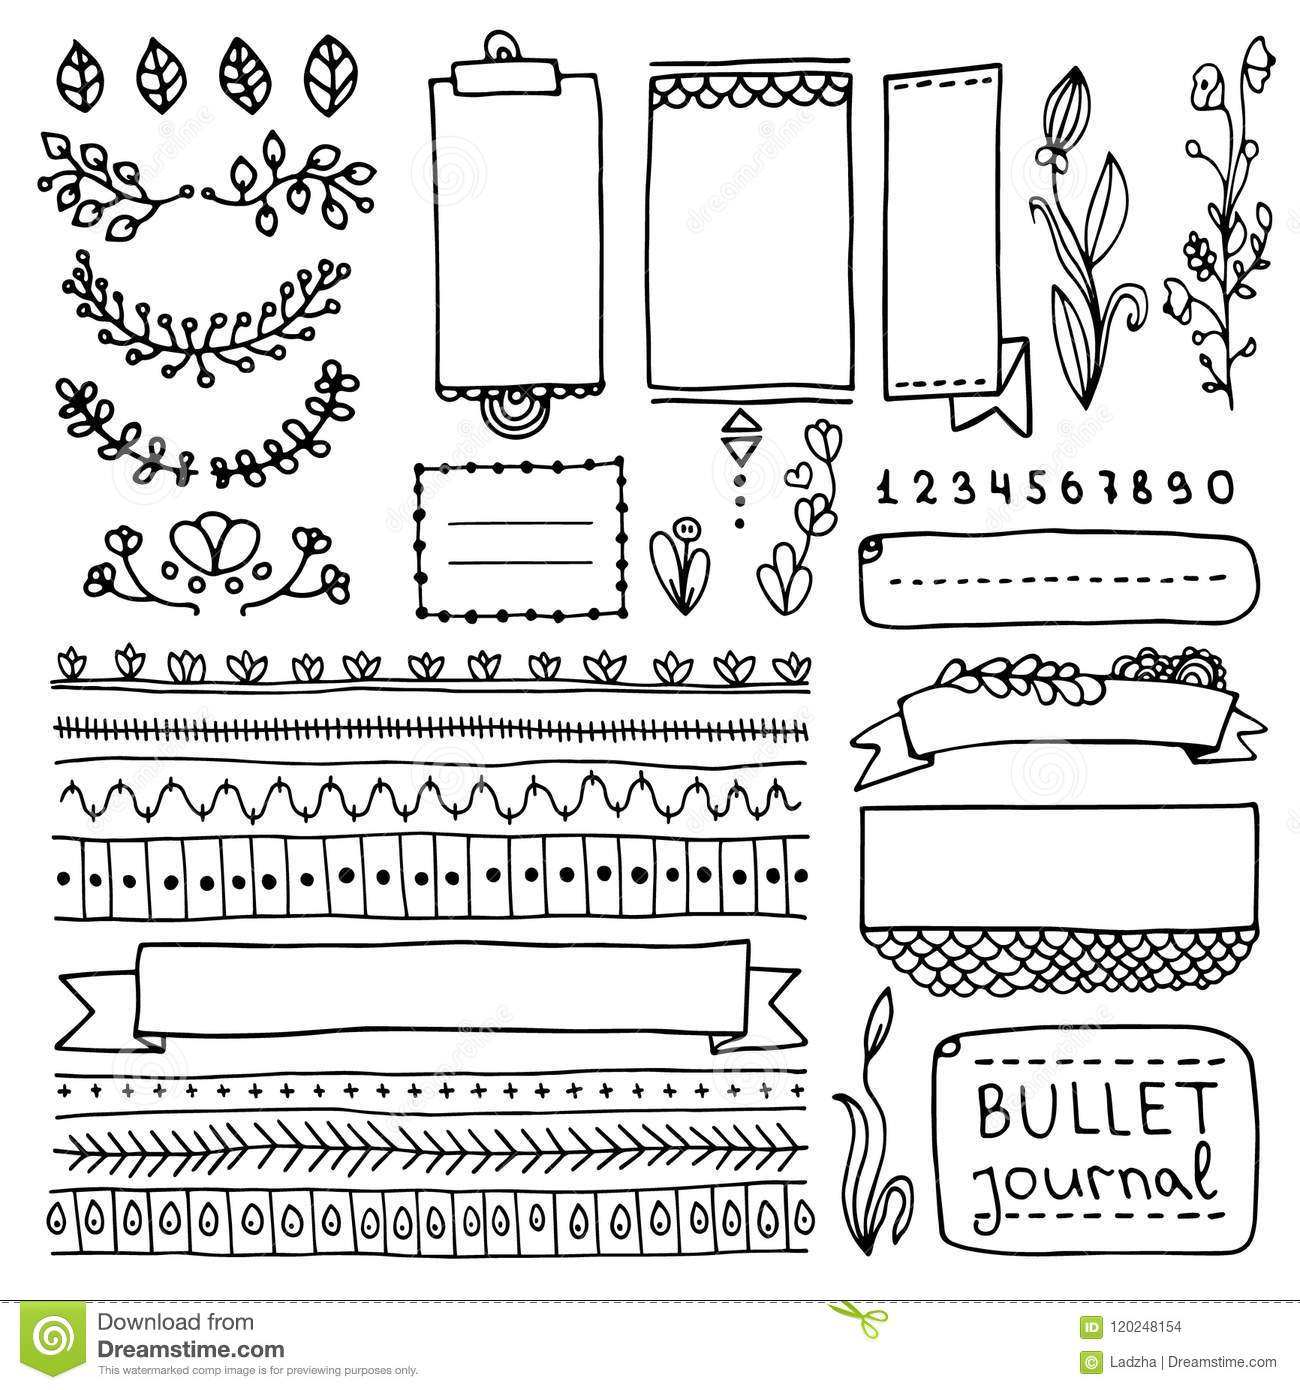 Bullet journal hand drawn vector elements for notebook, diary and planner. Doodle banners isolated on white background. Frames, dividers, ribbons, borders